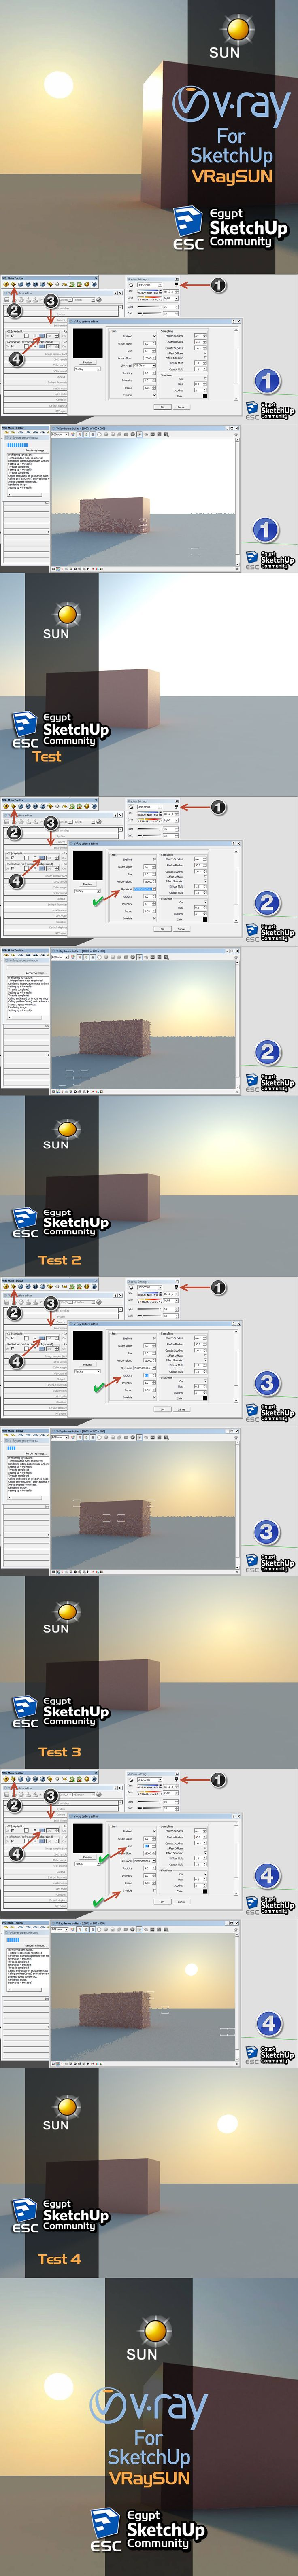 V-ray Sun Tutorial Sketchup V-Ray ChaosGroup Collect by Solømen